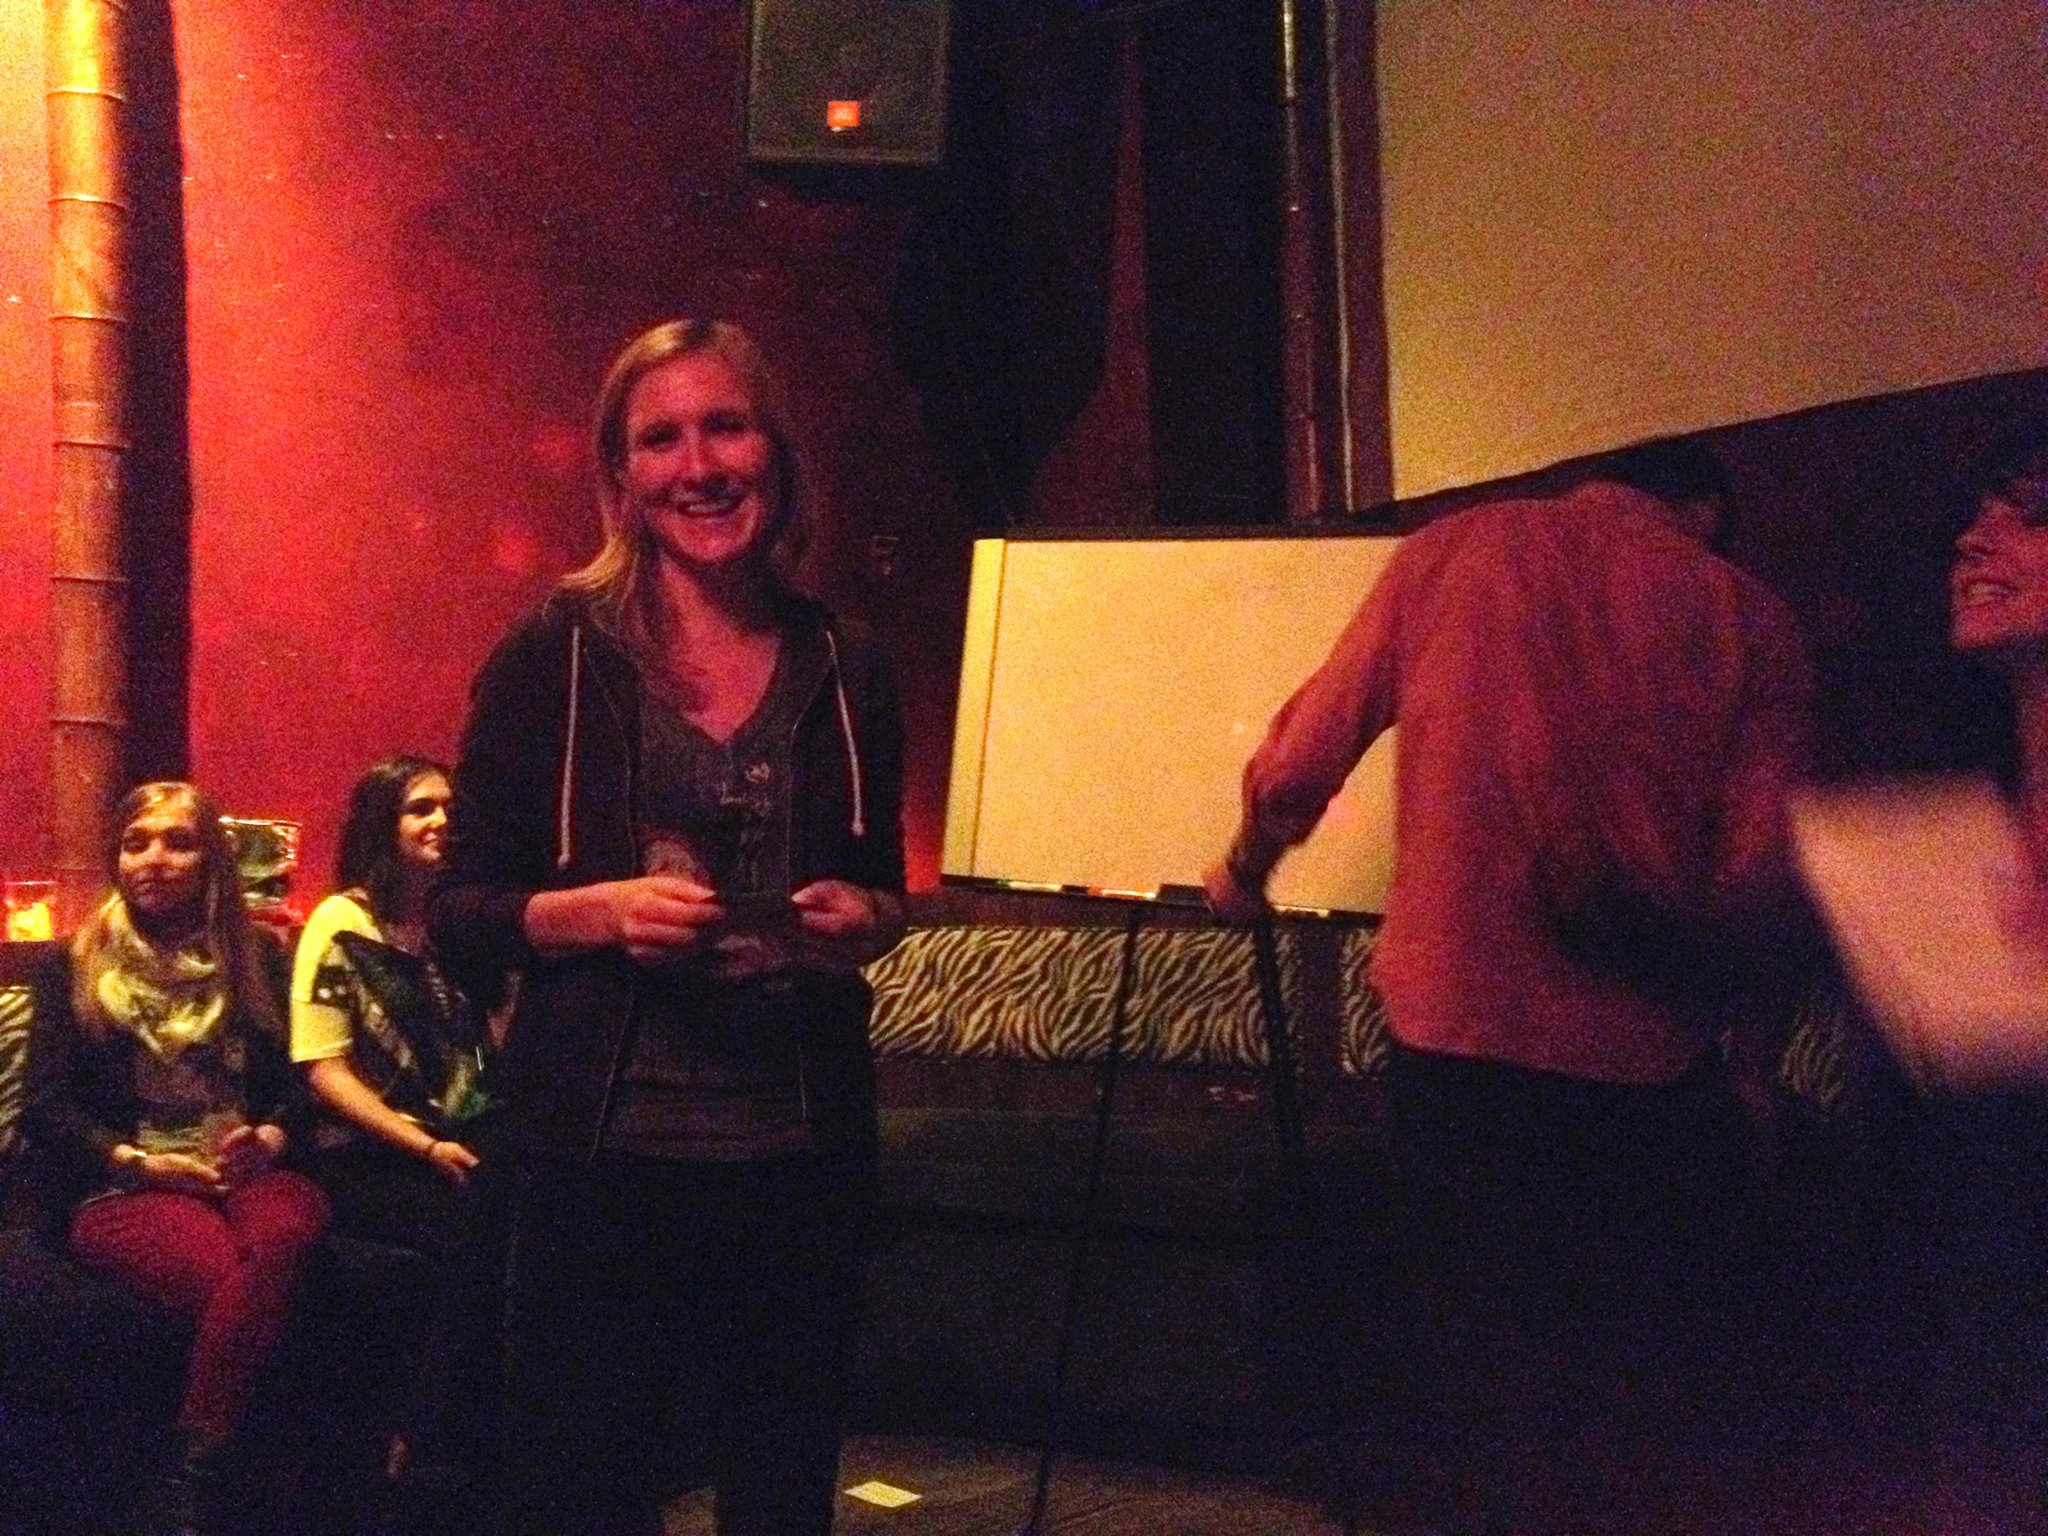 Literary Pictionary at Lit Crawl 2014